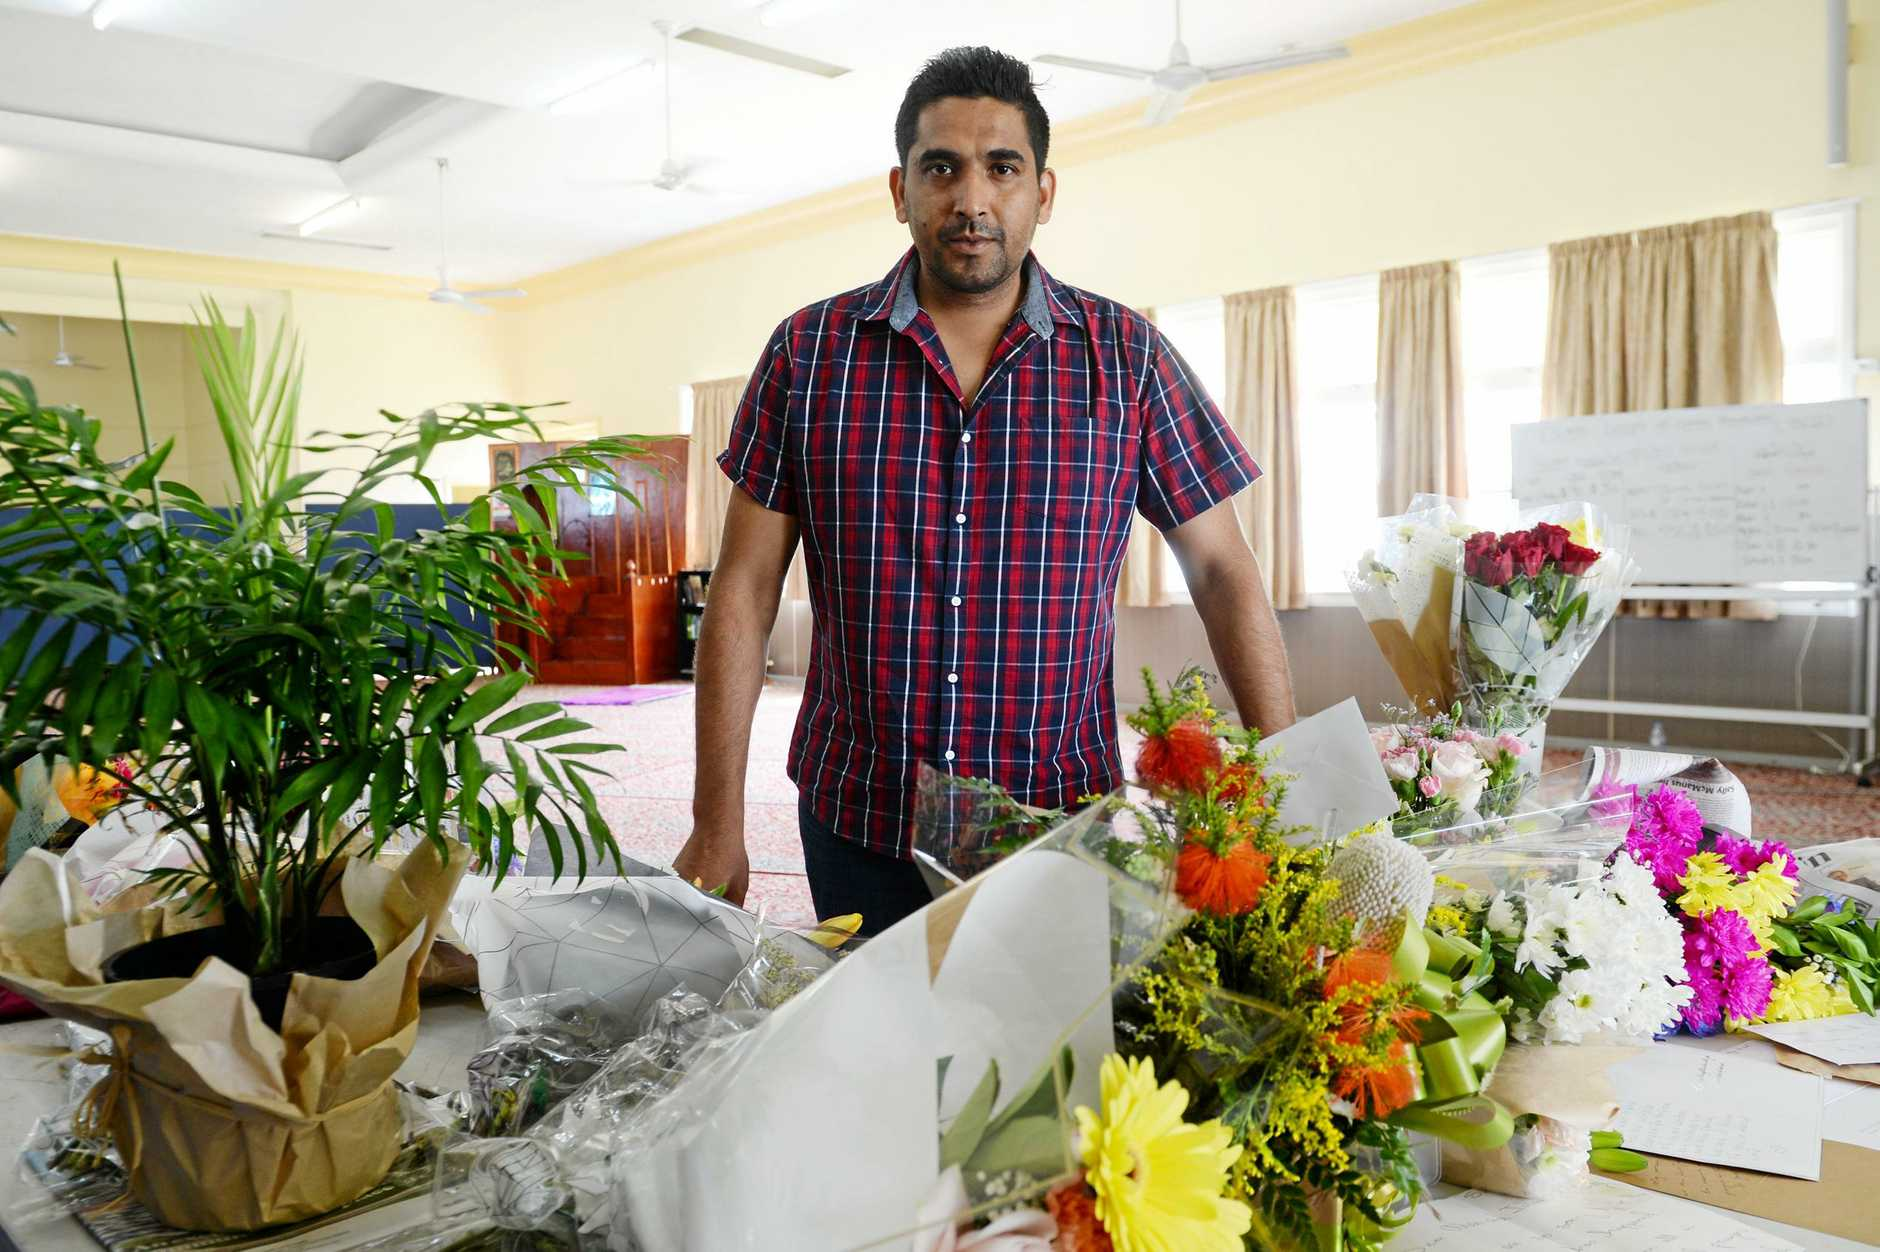 The citys Muslim leader President Riaz Ahmed said they had been overwhelmed with the support from the CQ community since the tragedy with hundreds of cards and bunches of flowers dropped outside its Rockhampton mosque.